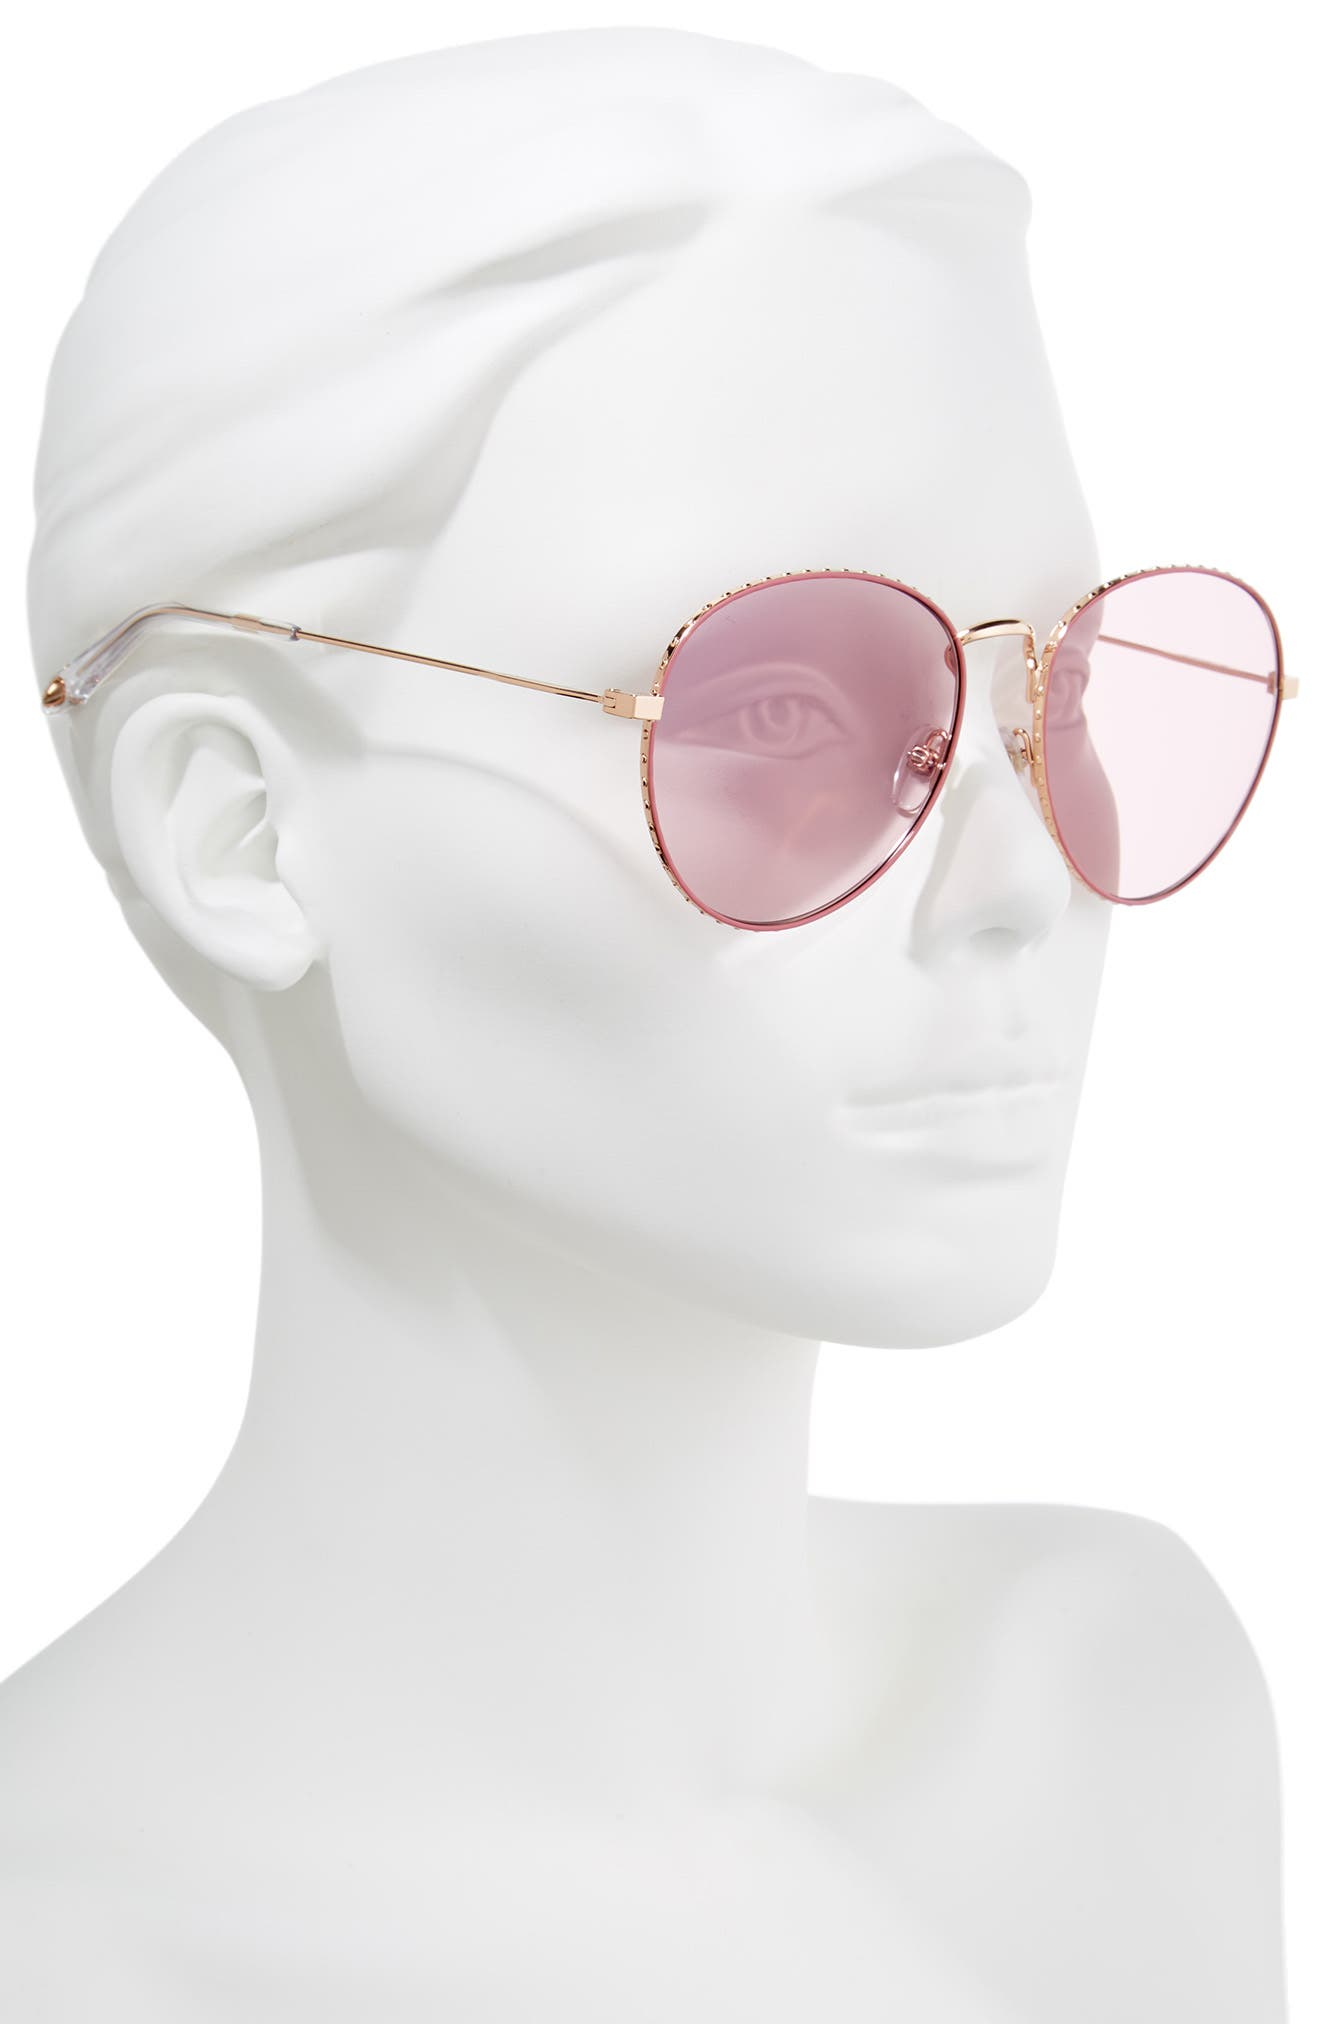 60mm Round Metal Sunglasses,                             Alternate thumbnail 2, color,                             710